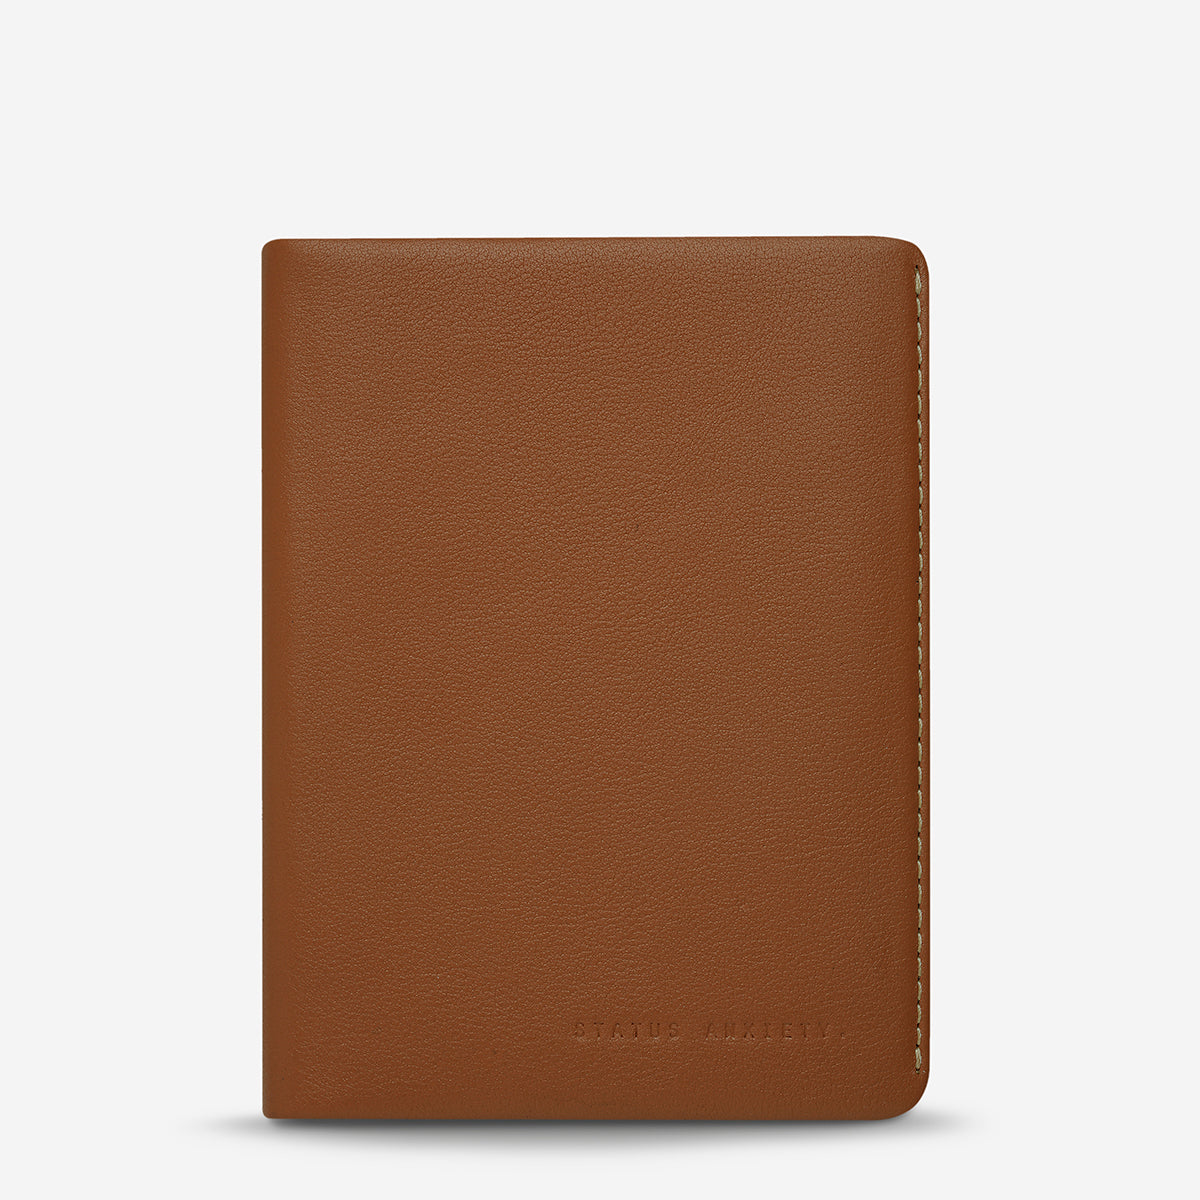 Status Anxiety Conquest Leather Passport Wallet - Camel